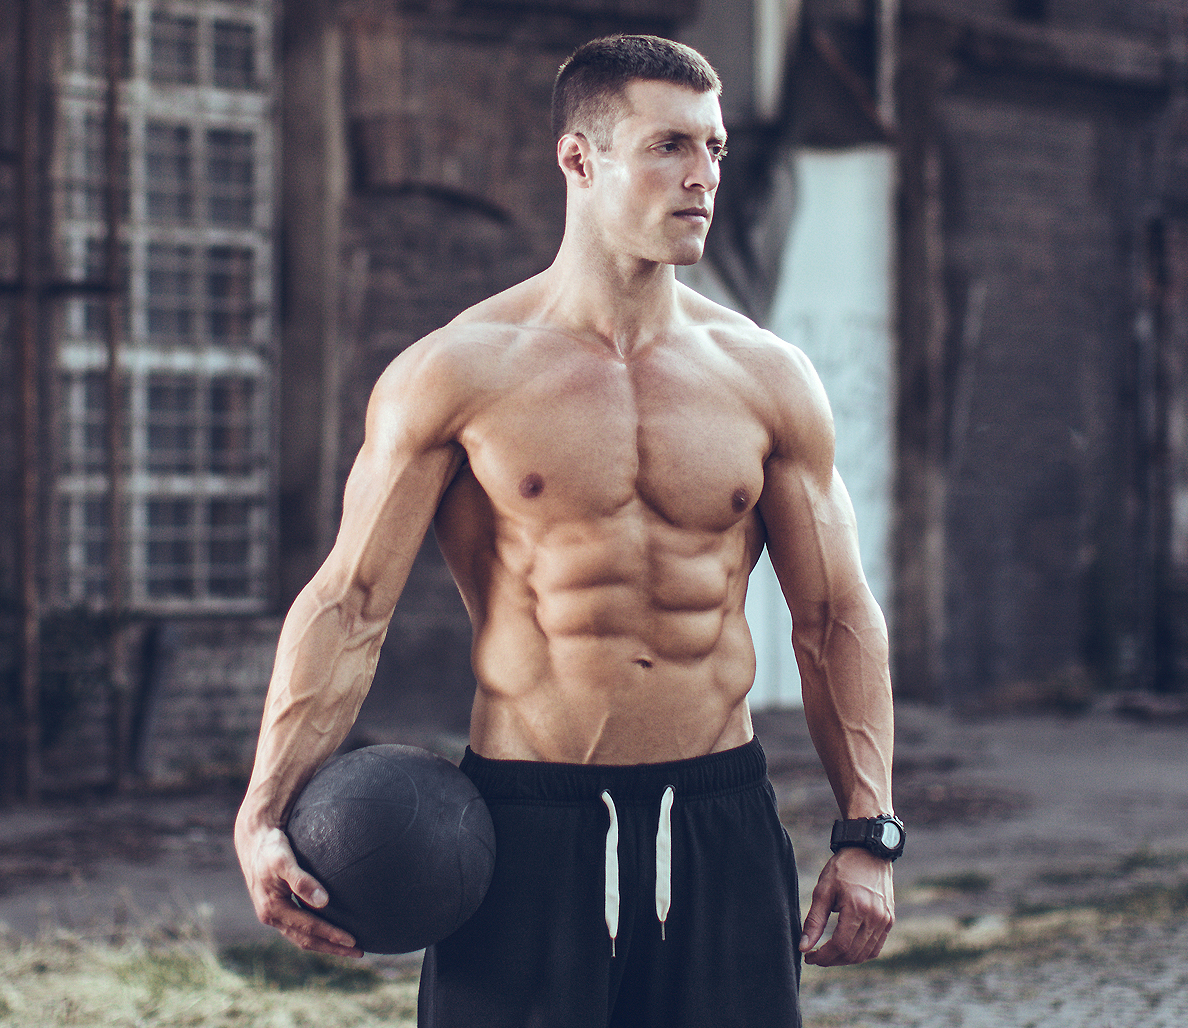 Can you get abs in a month reddit